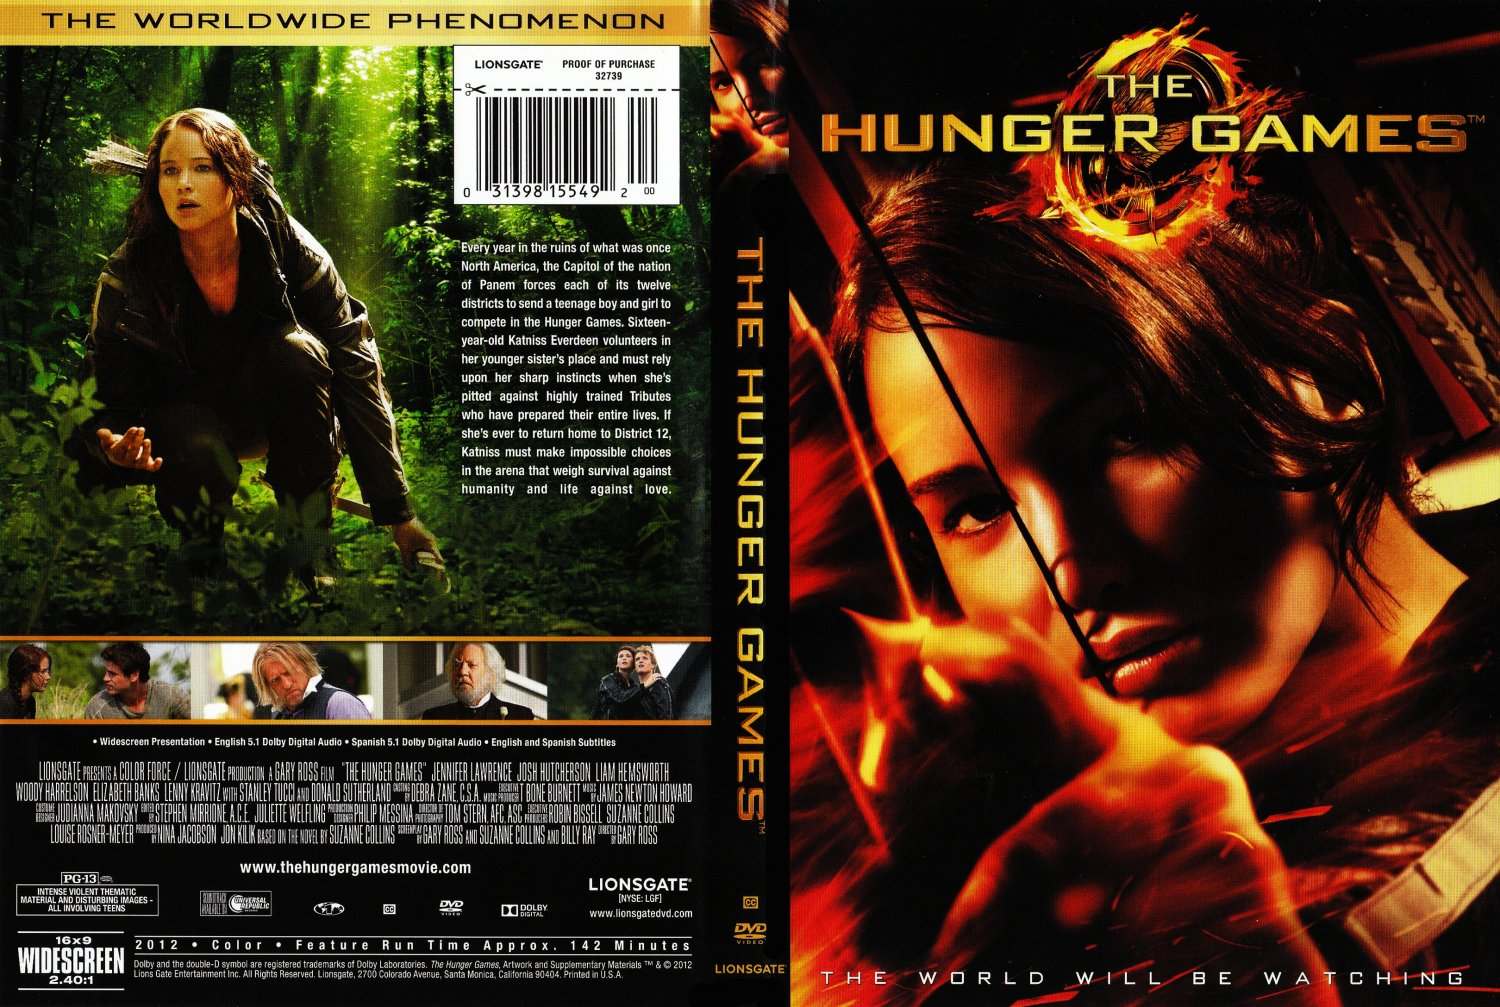 Hunger games dvd release date in Perth